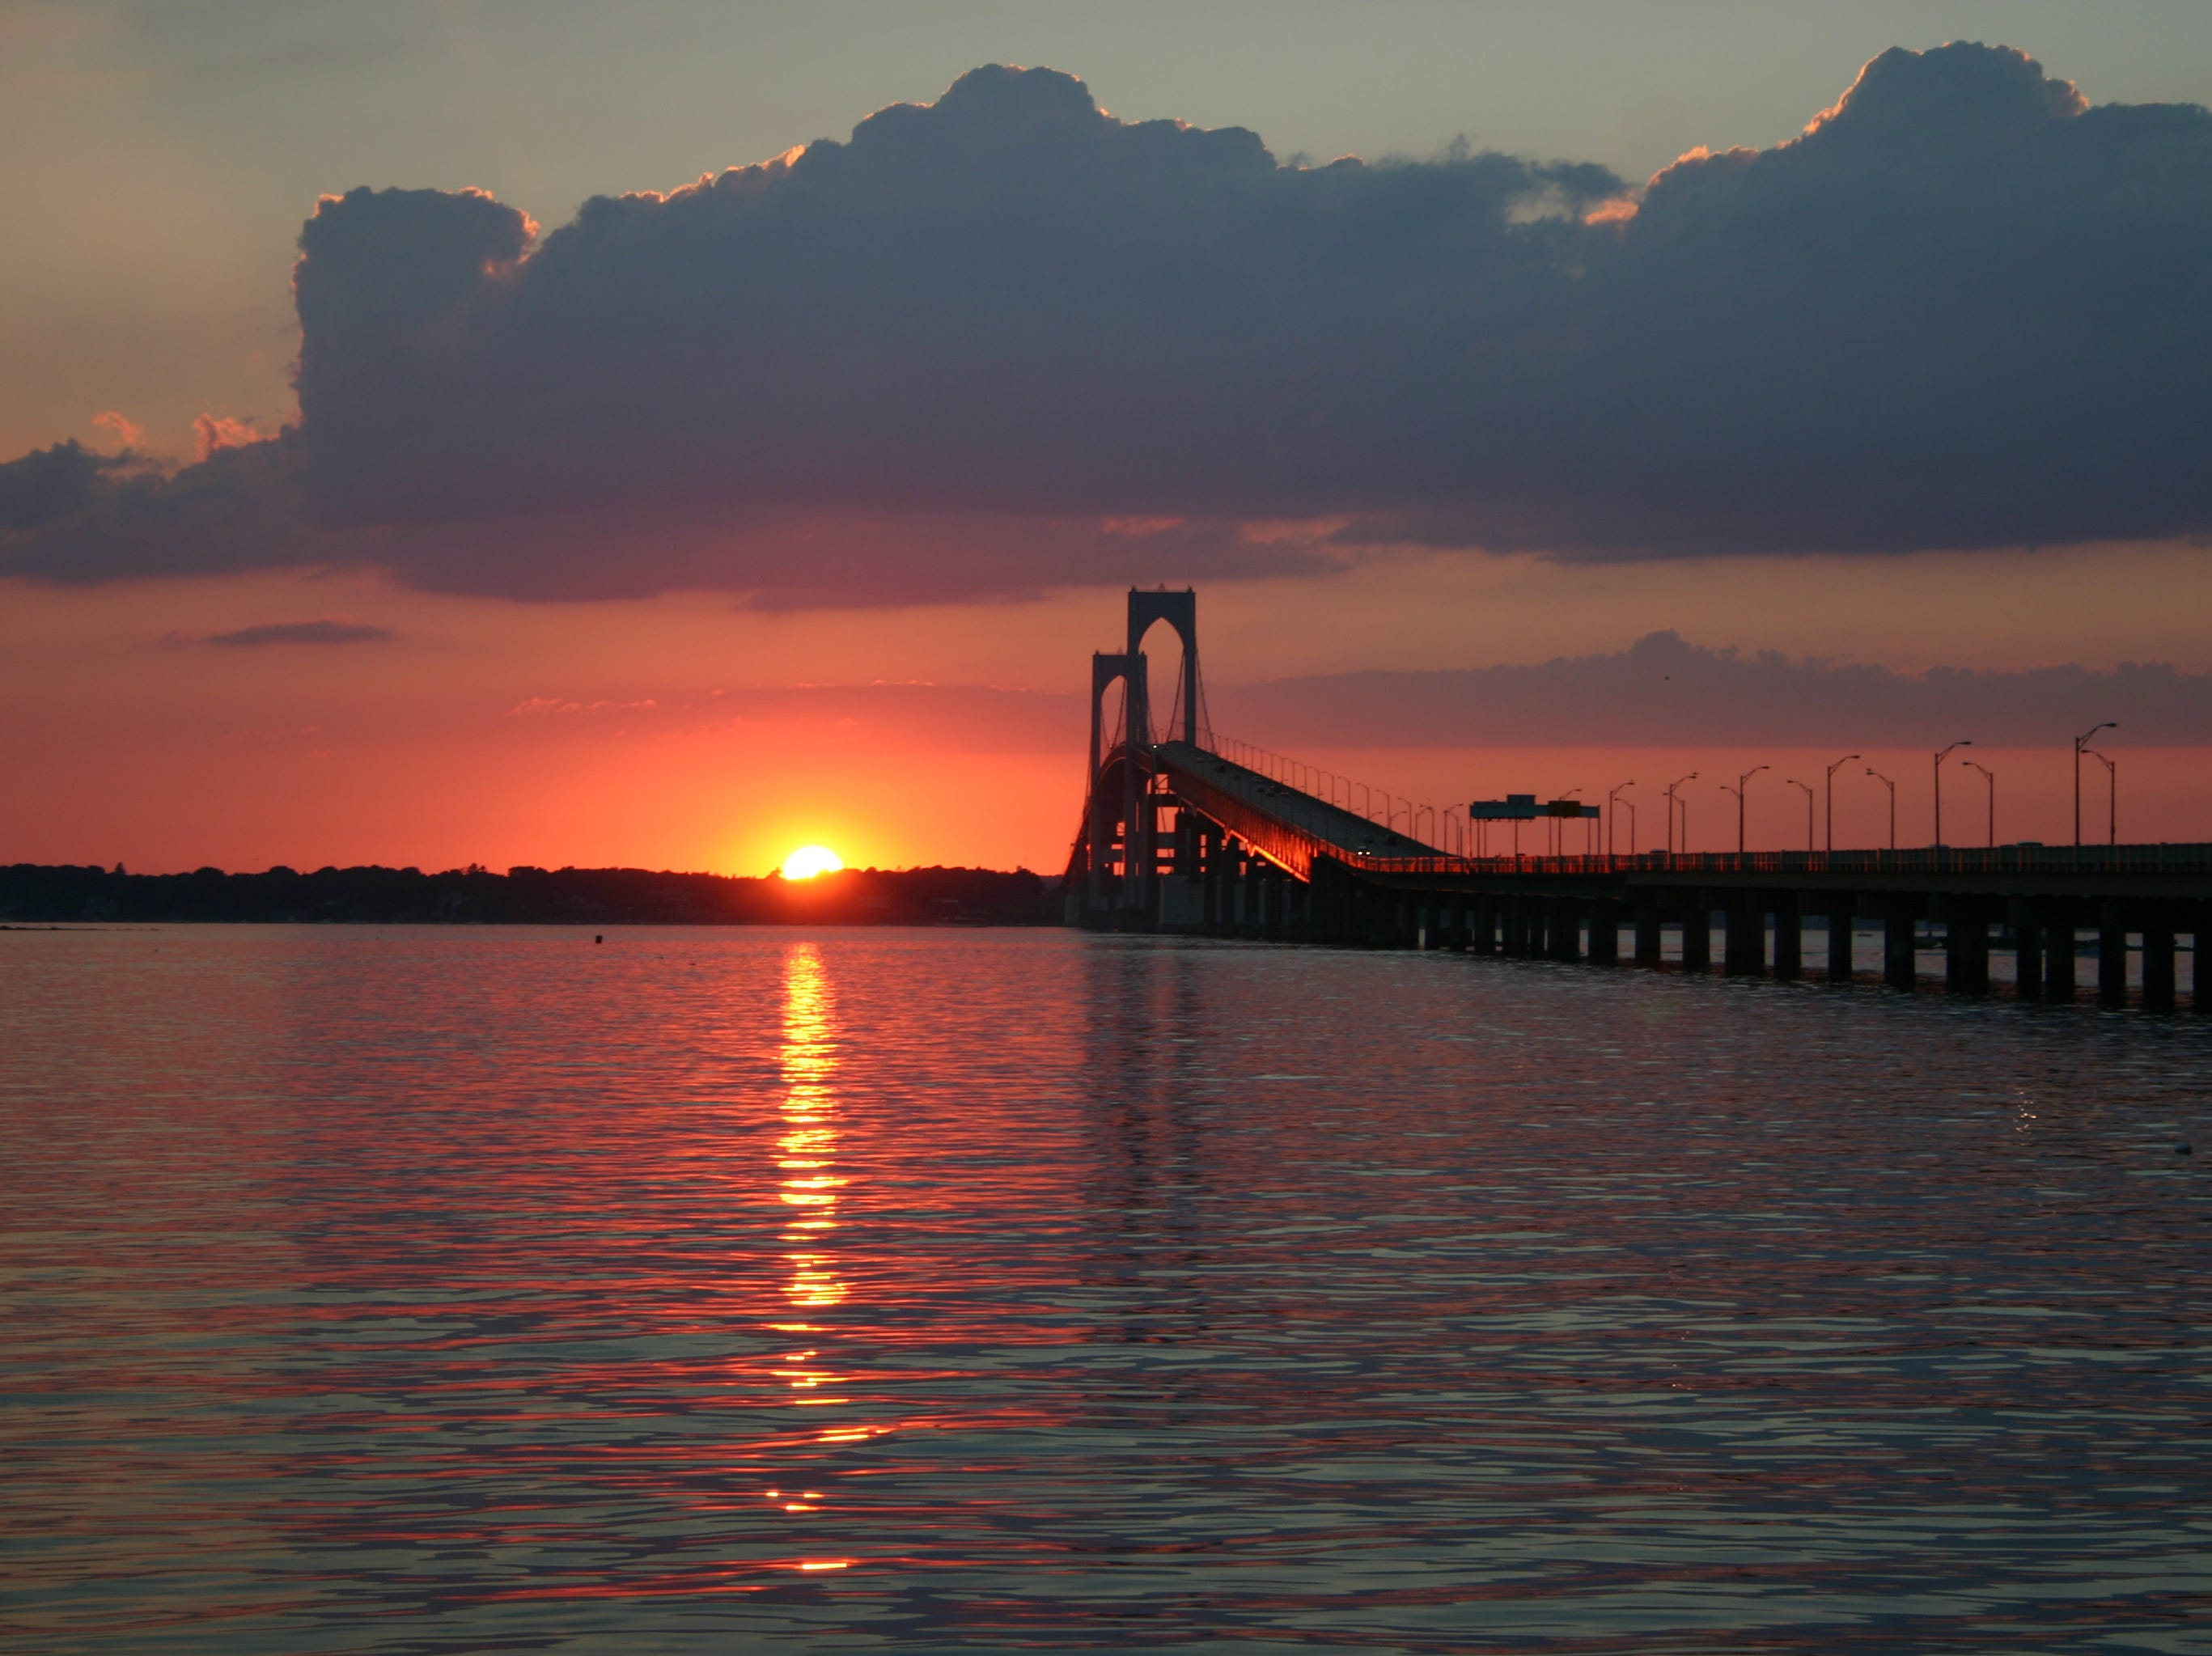 ** FOR IMMEDIATE RELEASE **The sun sets over Conanicut Island as viewed from the Newport side of The Claiborne Pell Bridge in Rhode Island, in this August 2005 photo.  (AP Photo/Larry Price) ORG XMIT: NY423